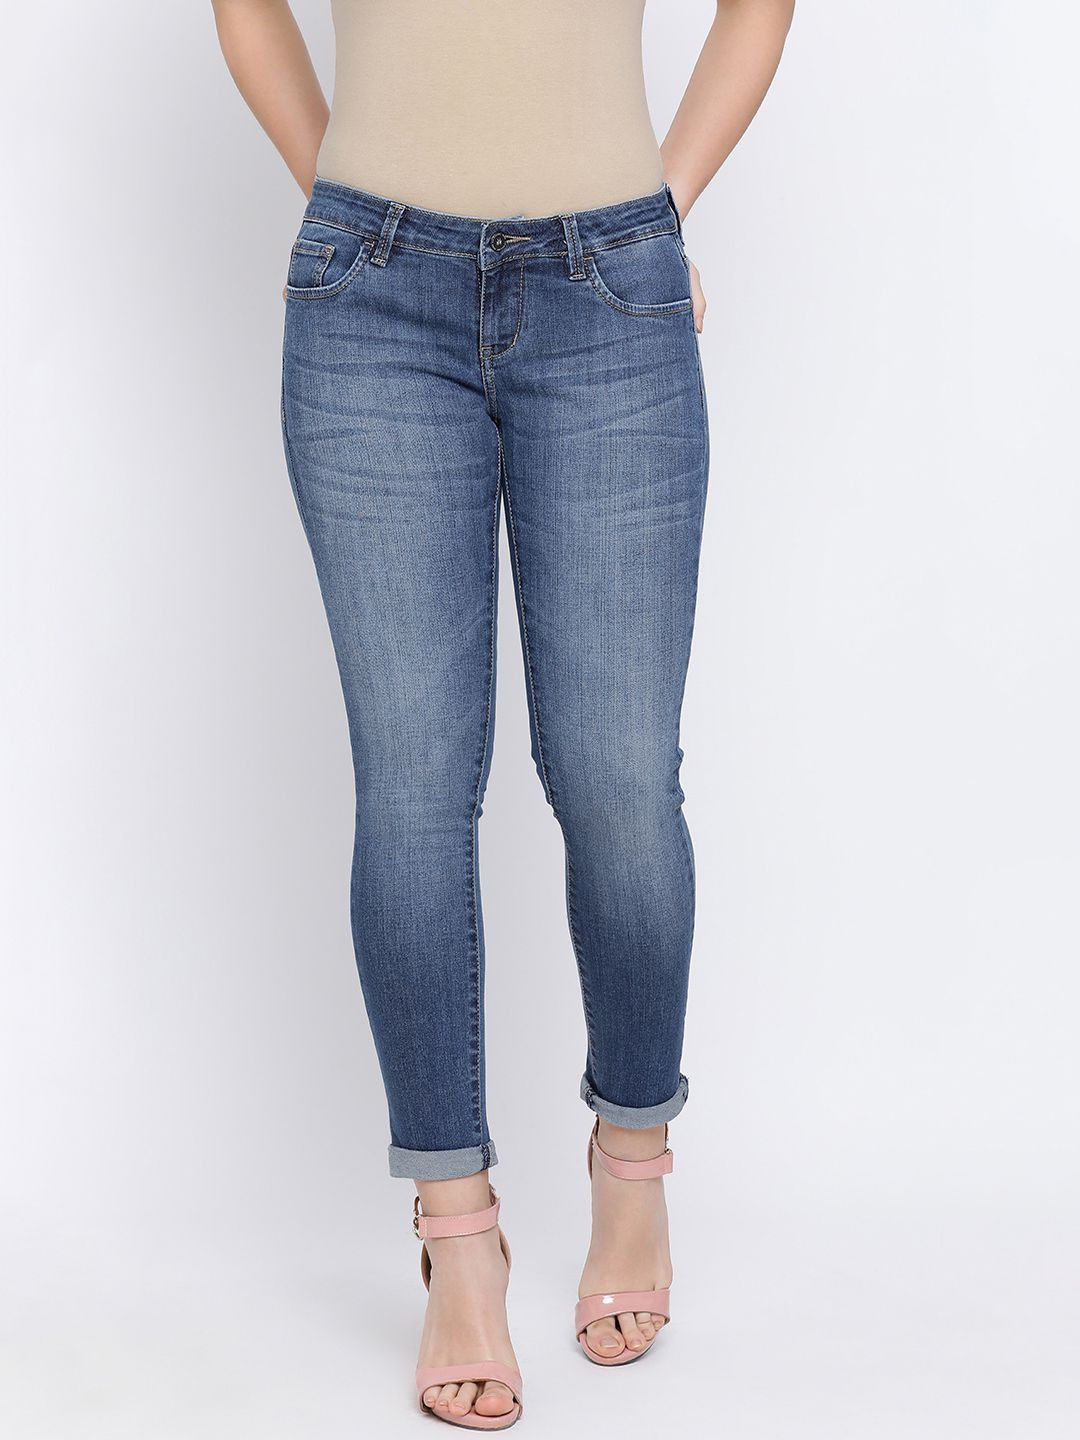 Crimsoune Club Cotton Jeans - Blue